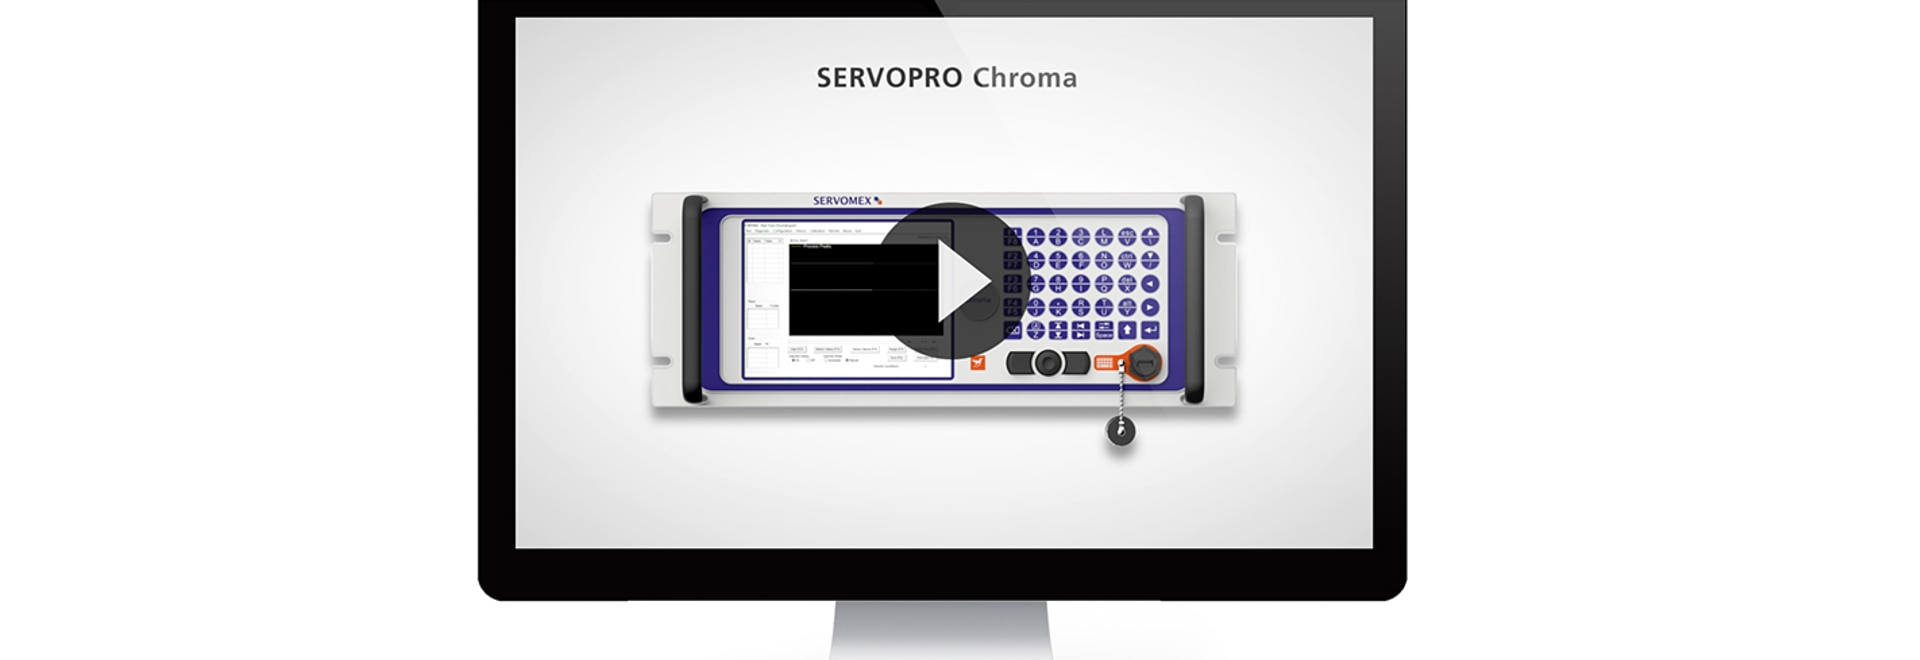 LEARN MORE ABOUT THE CHROMA IN OUR NEW PRODUCT VIDEO